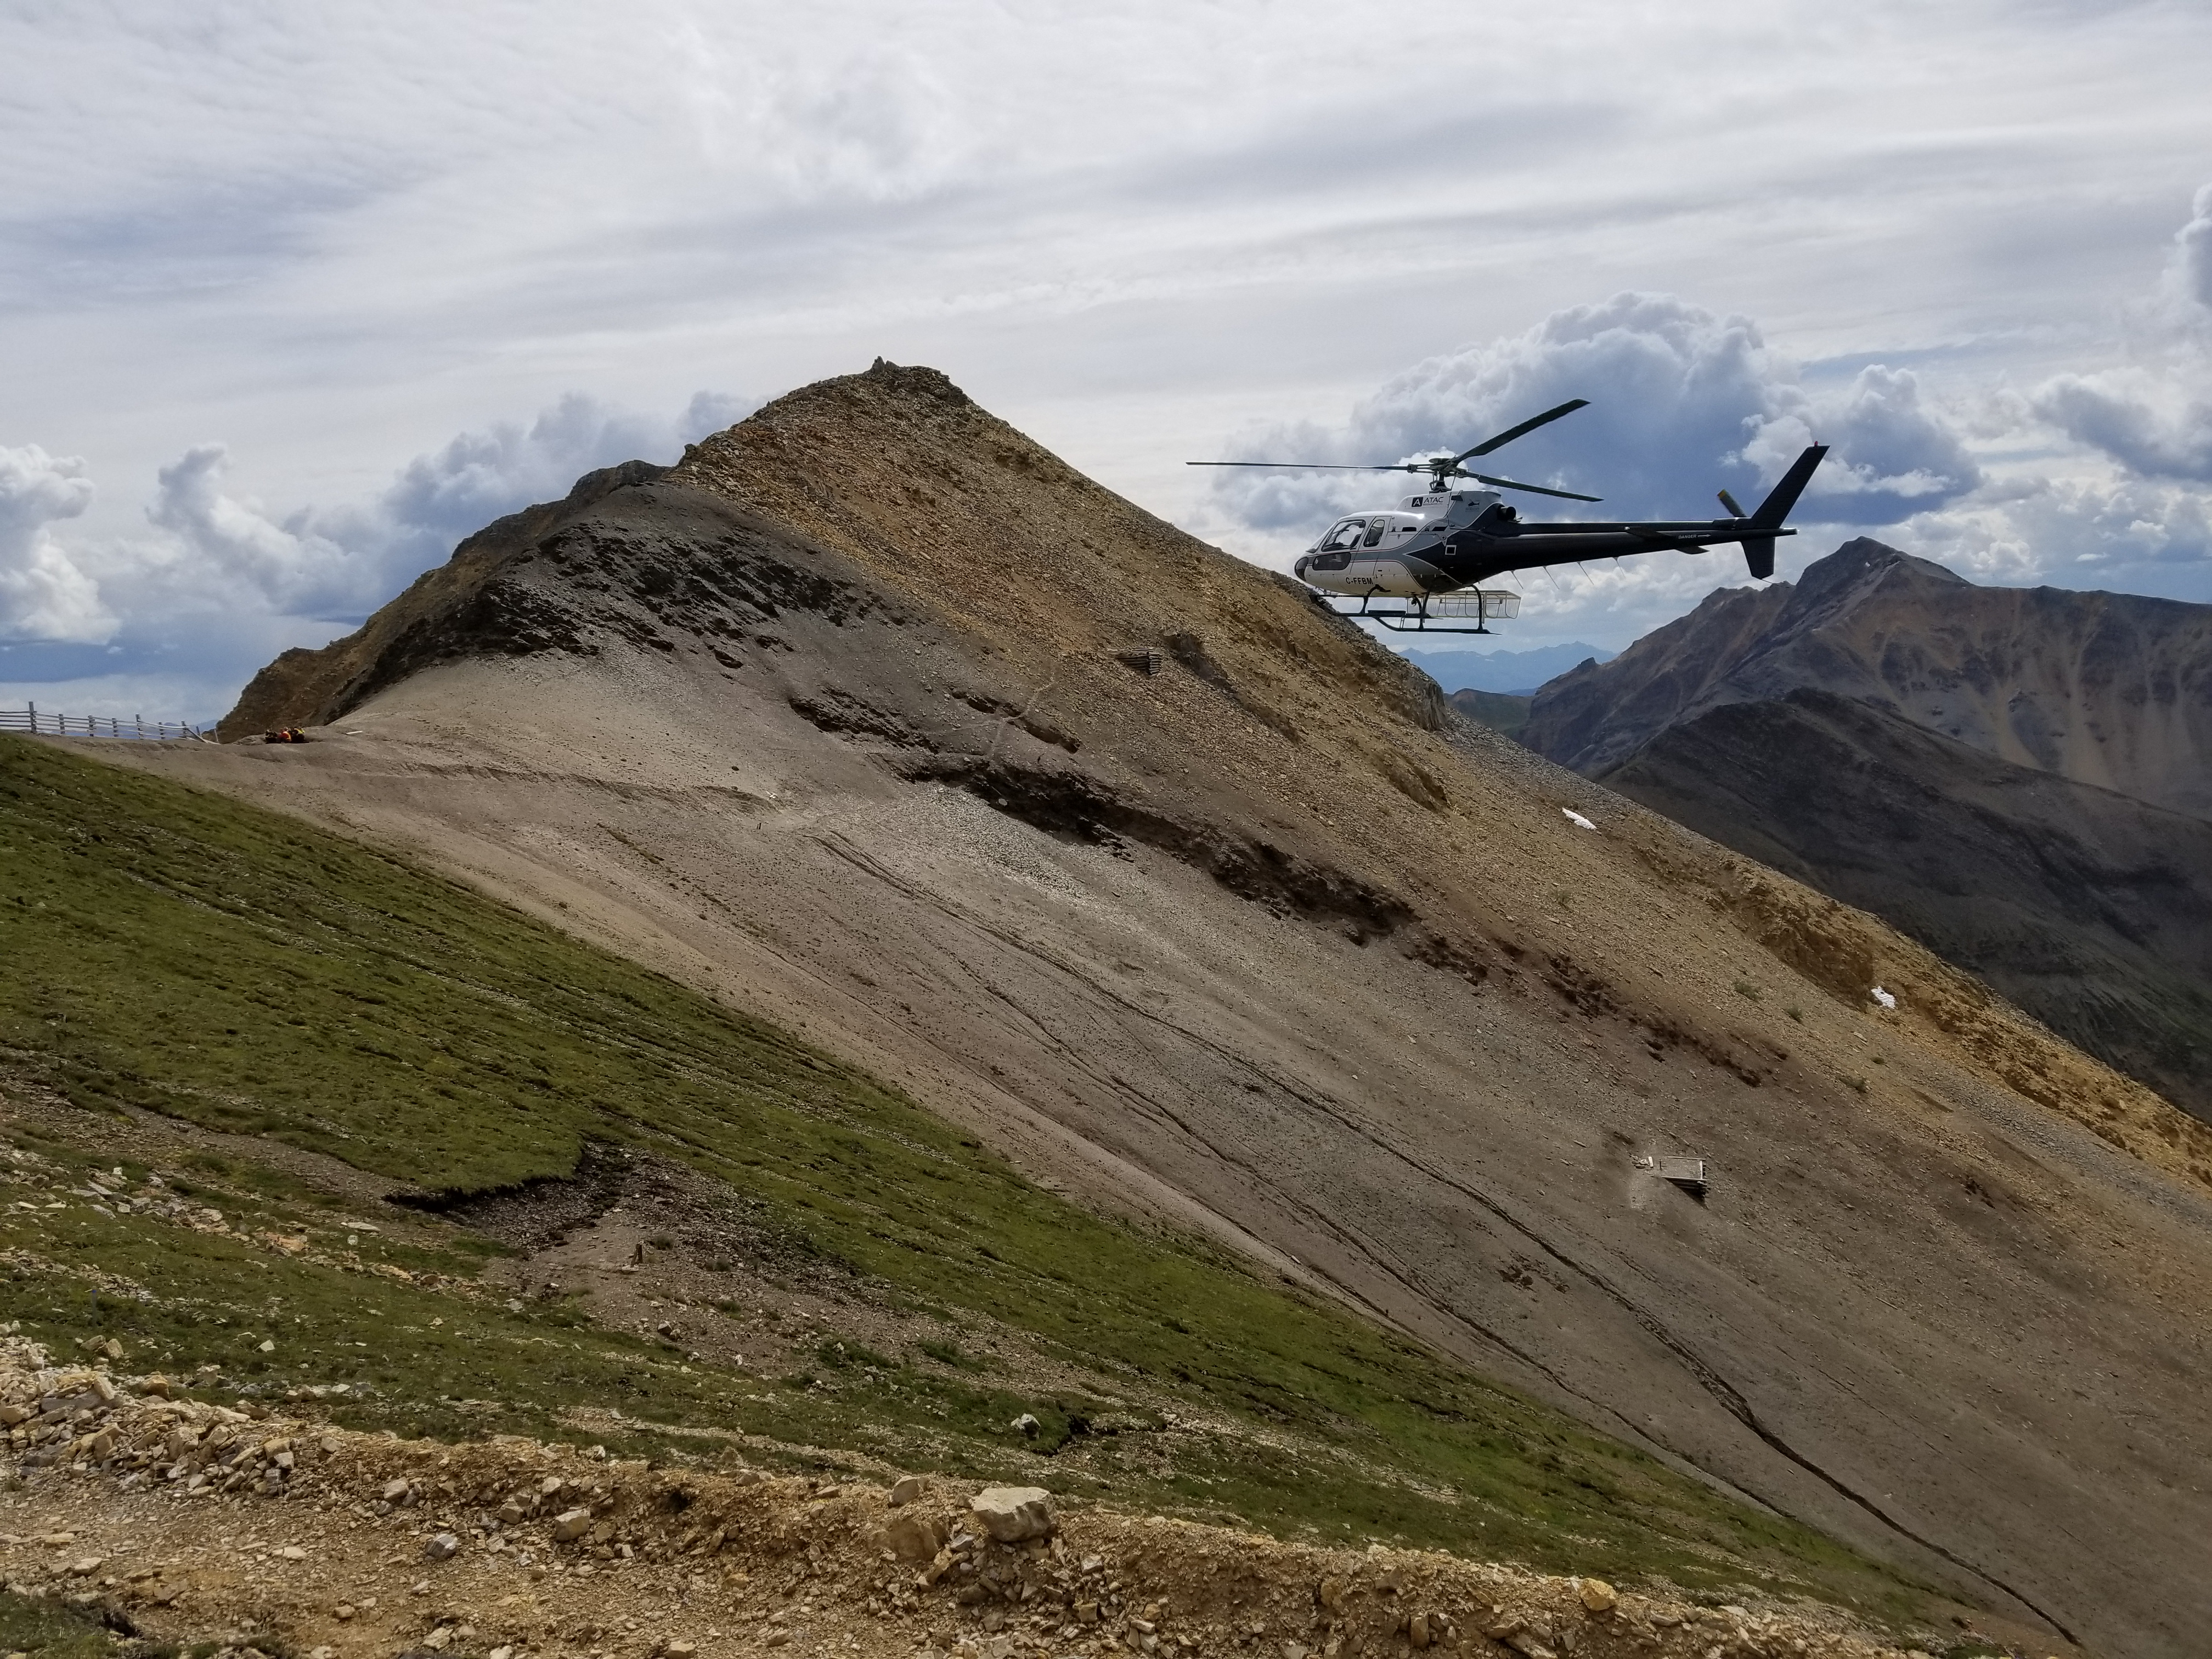 Helicopter Landing on the Mountain